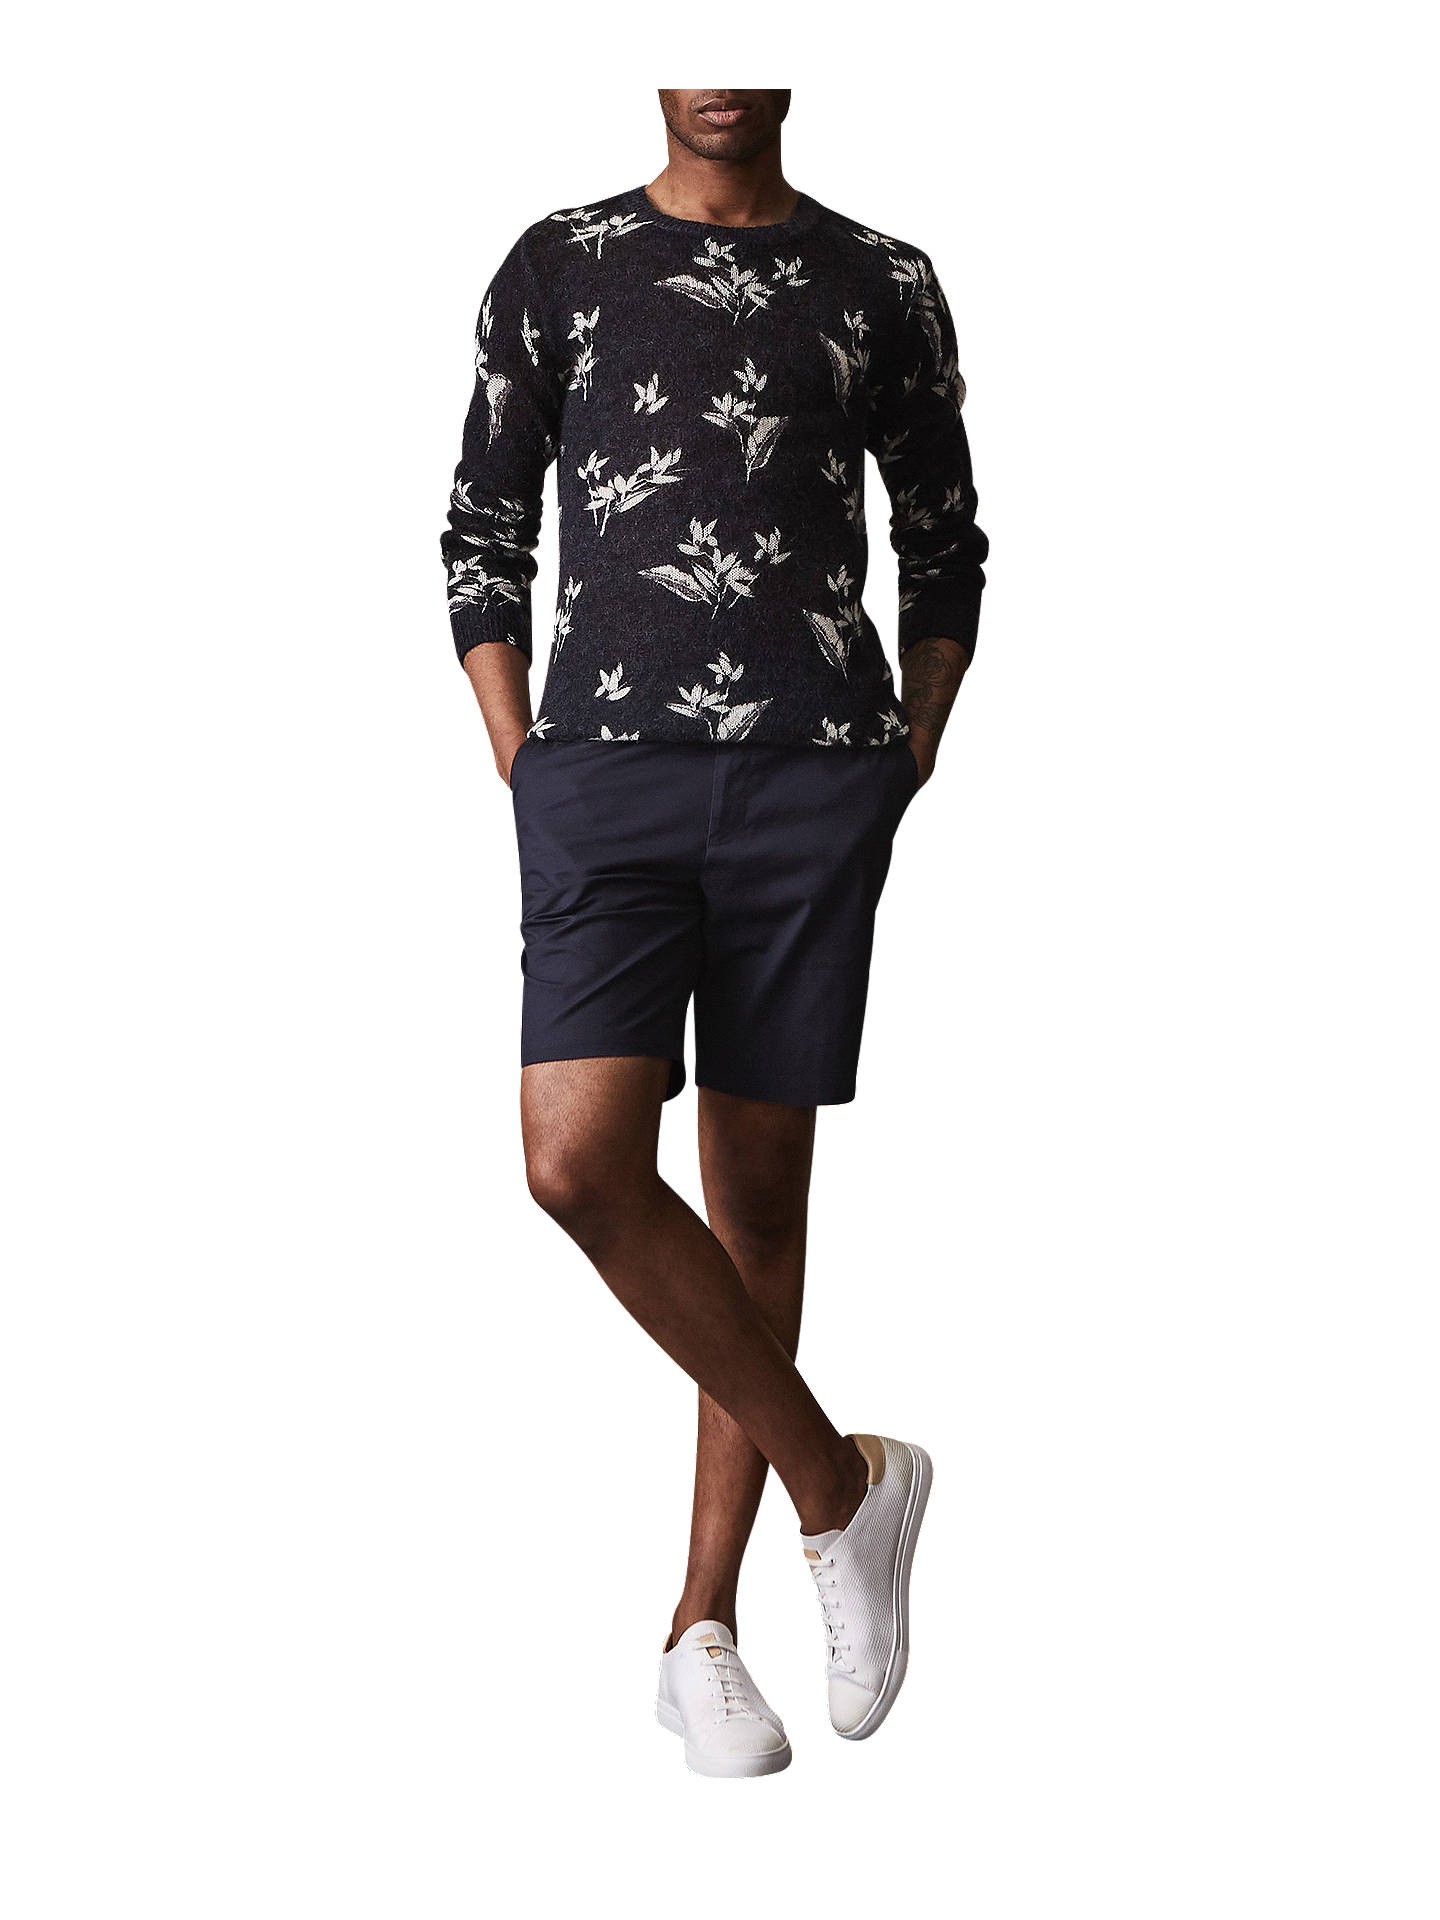 BuyReiss Wicker Tailored Chino Shorts, Navy, 28R Online at johnlewis.com